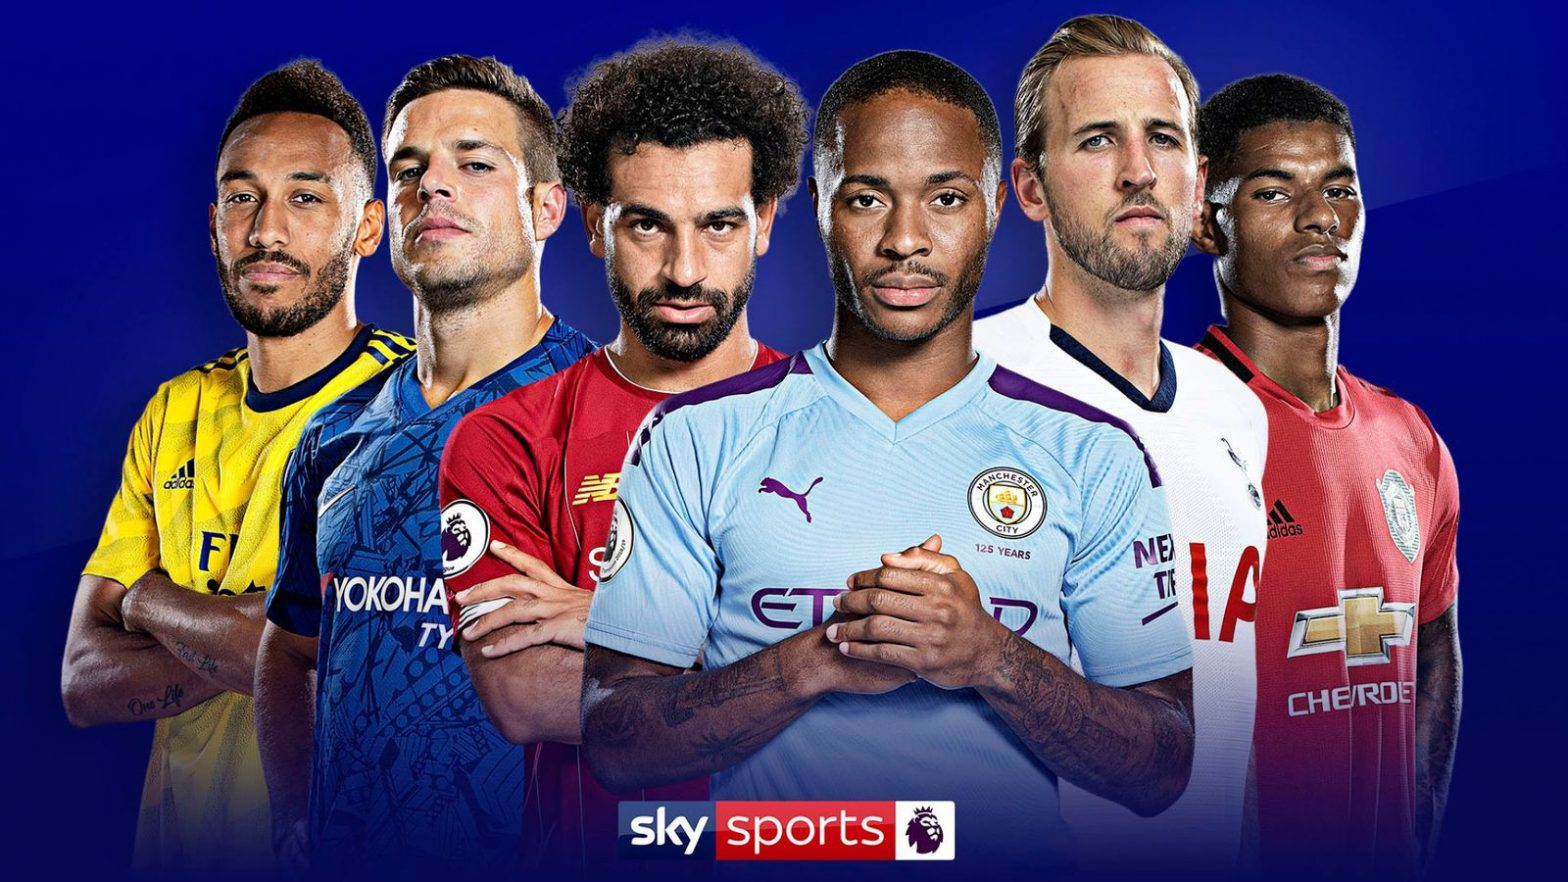 Manchester derby live on Sky in December